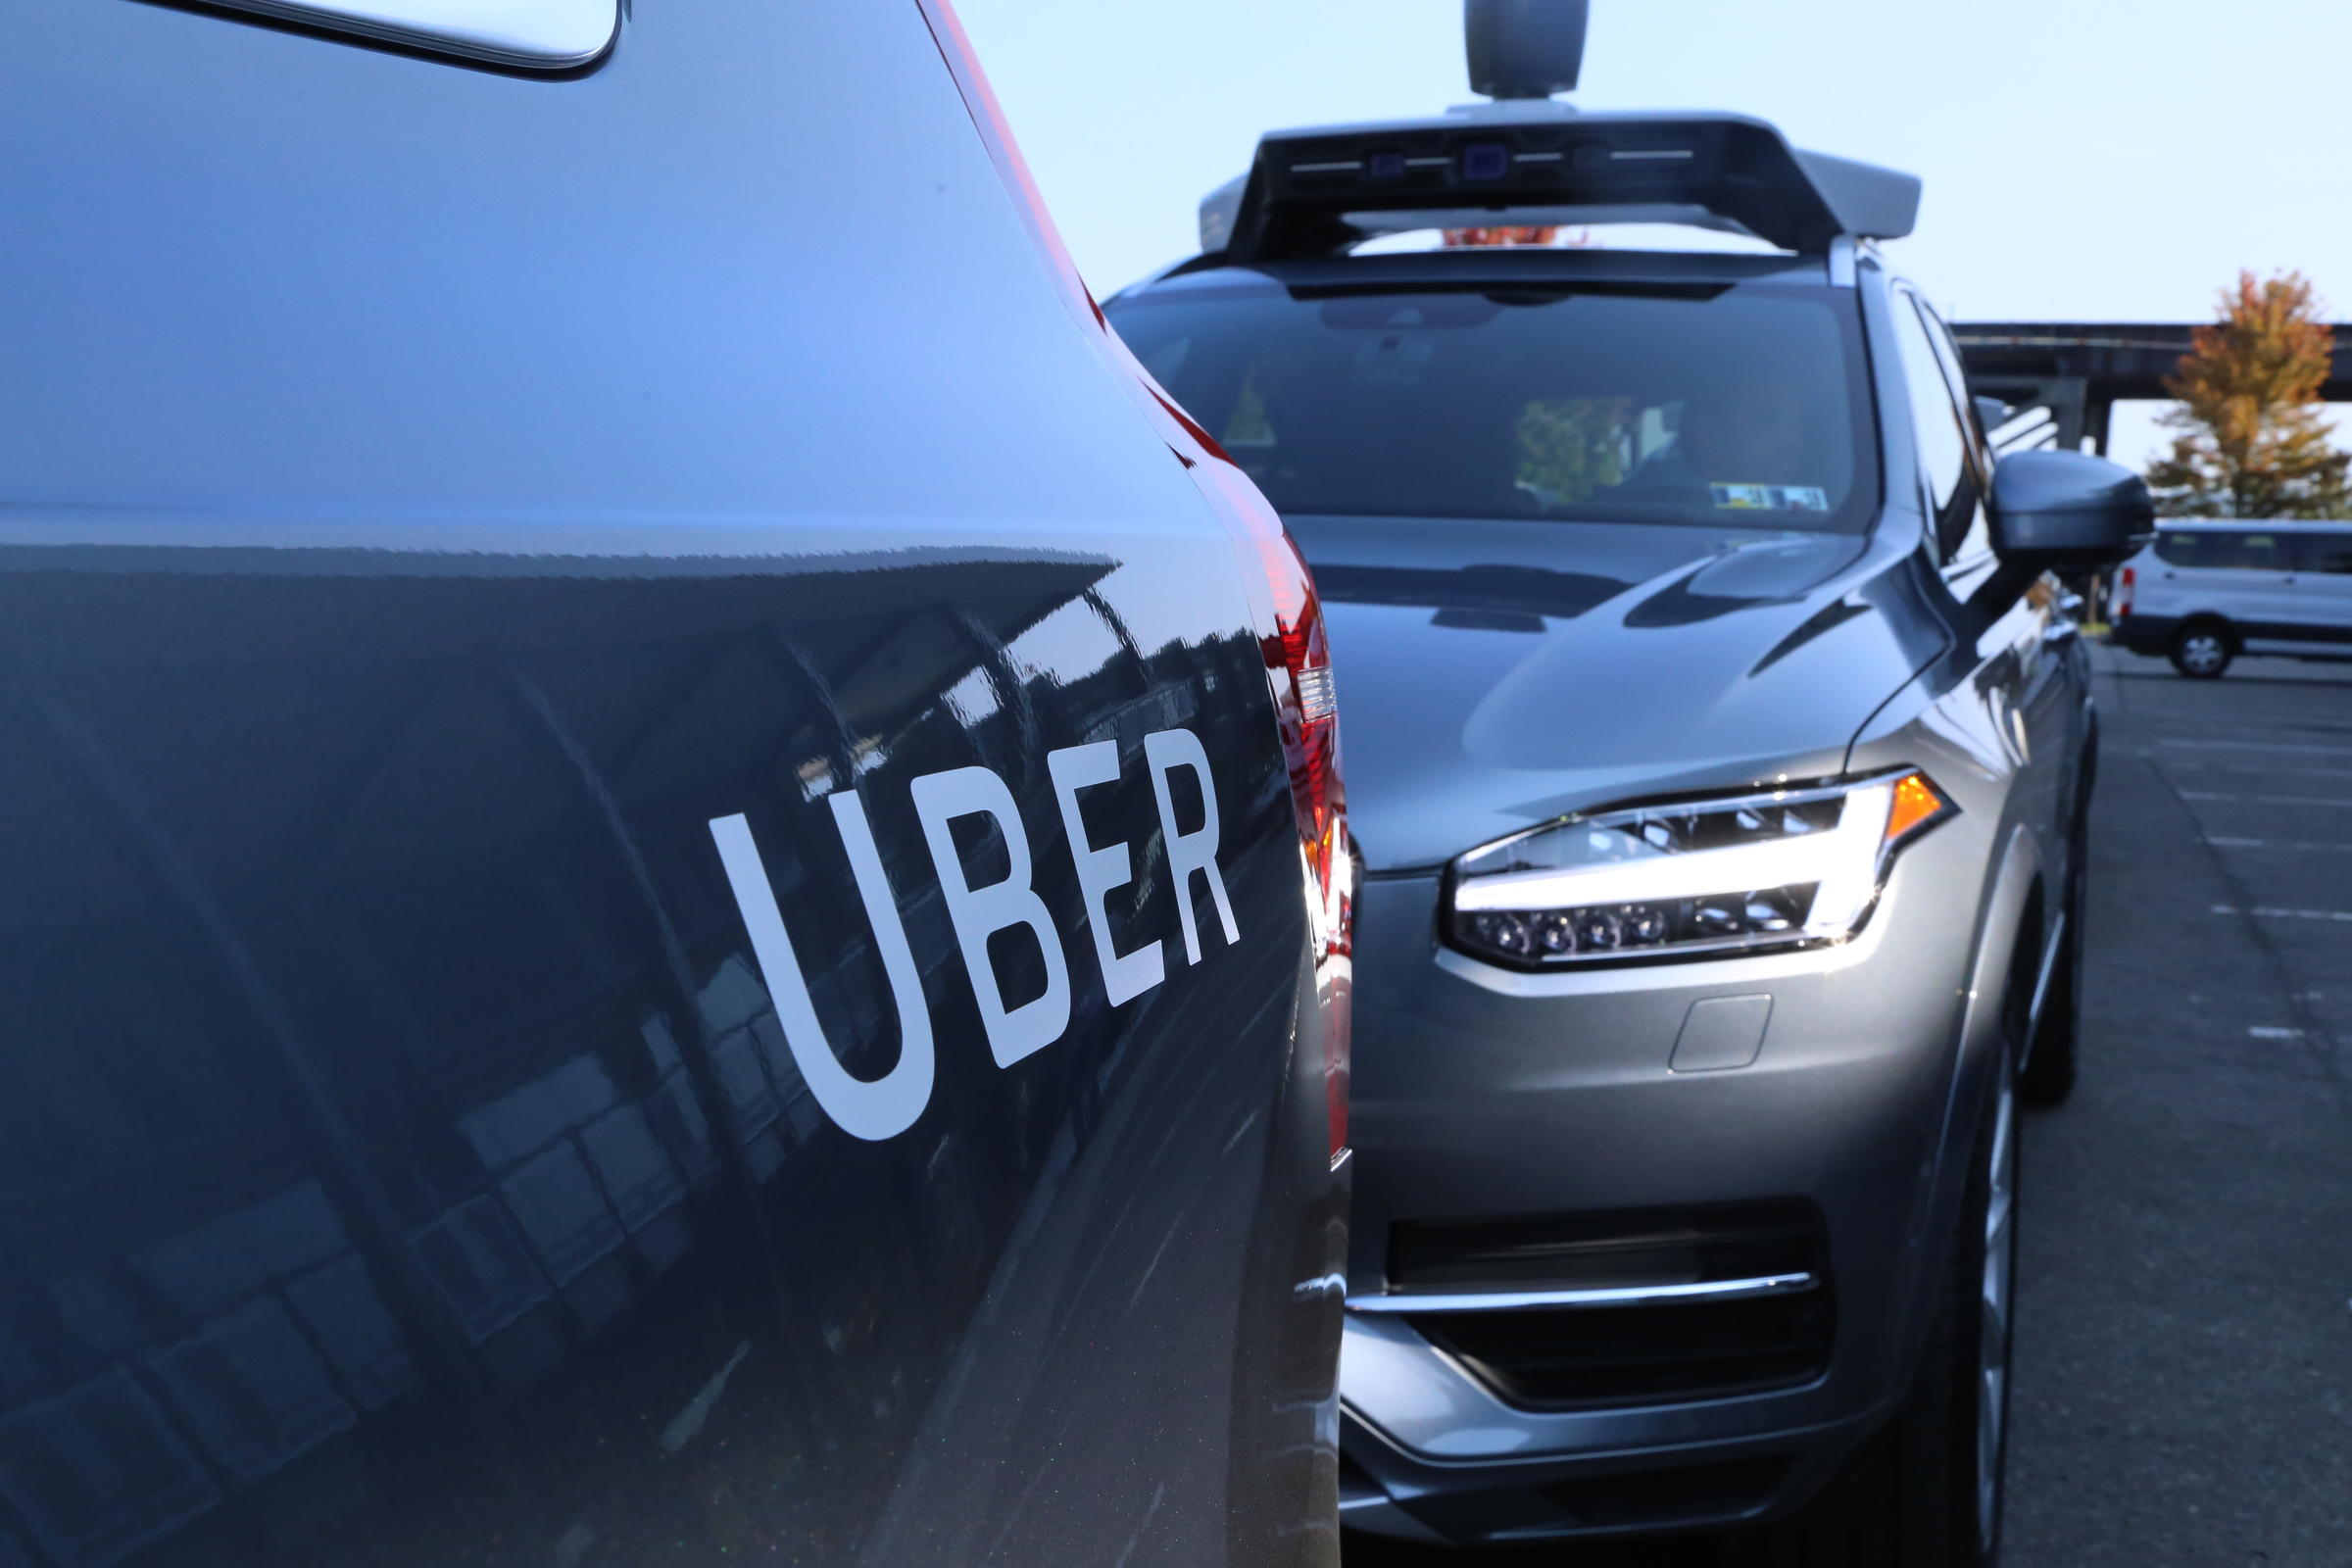 Uber Isolated by Partners and Competitors in Aftermath of Crash